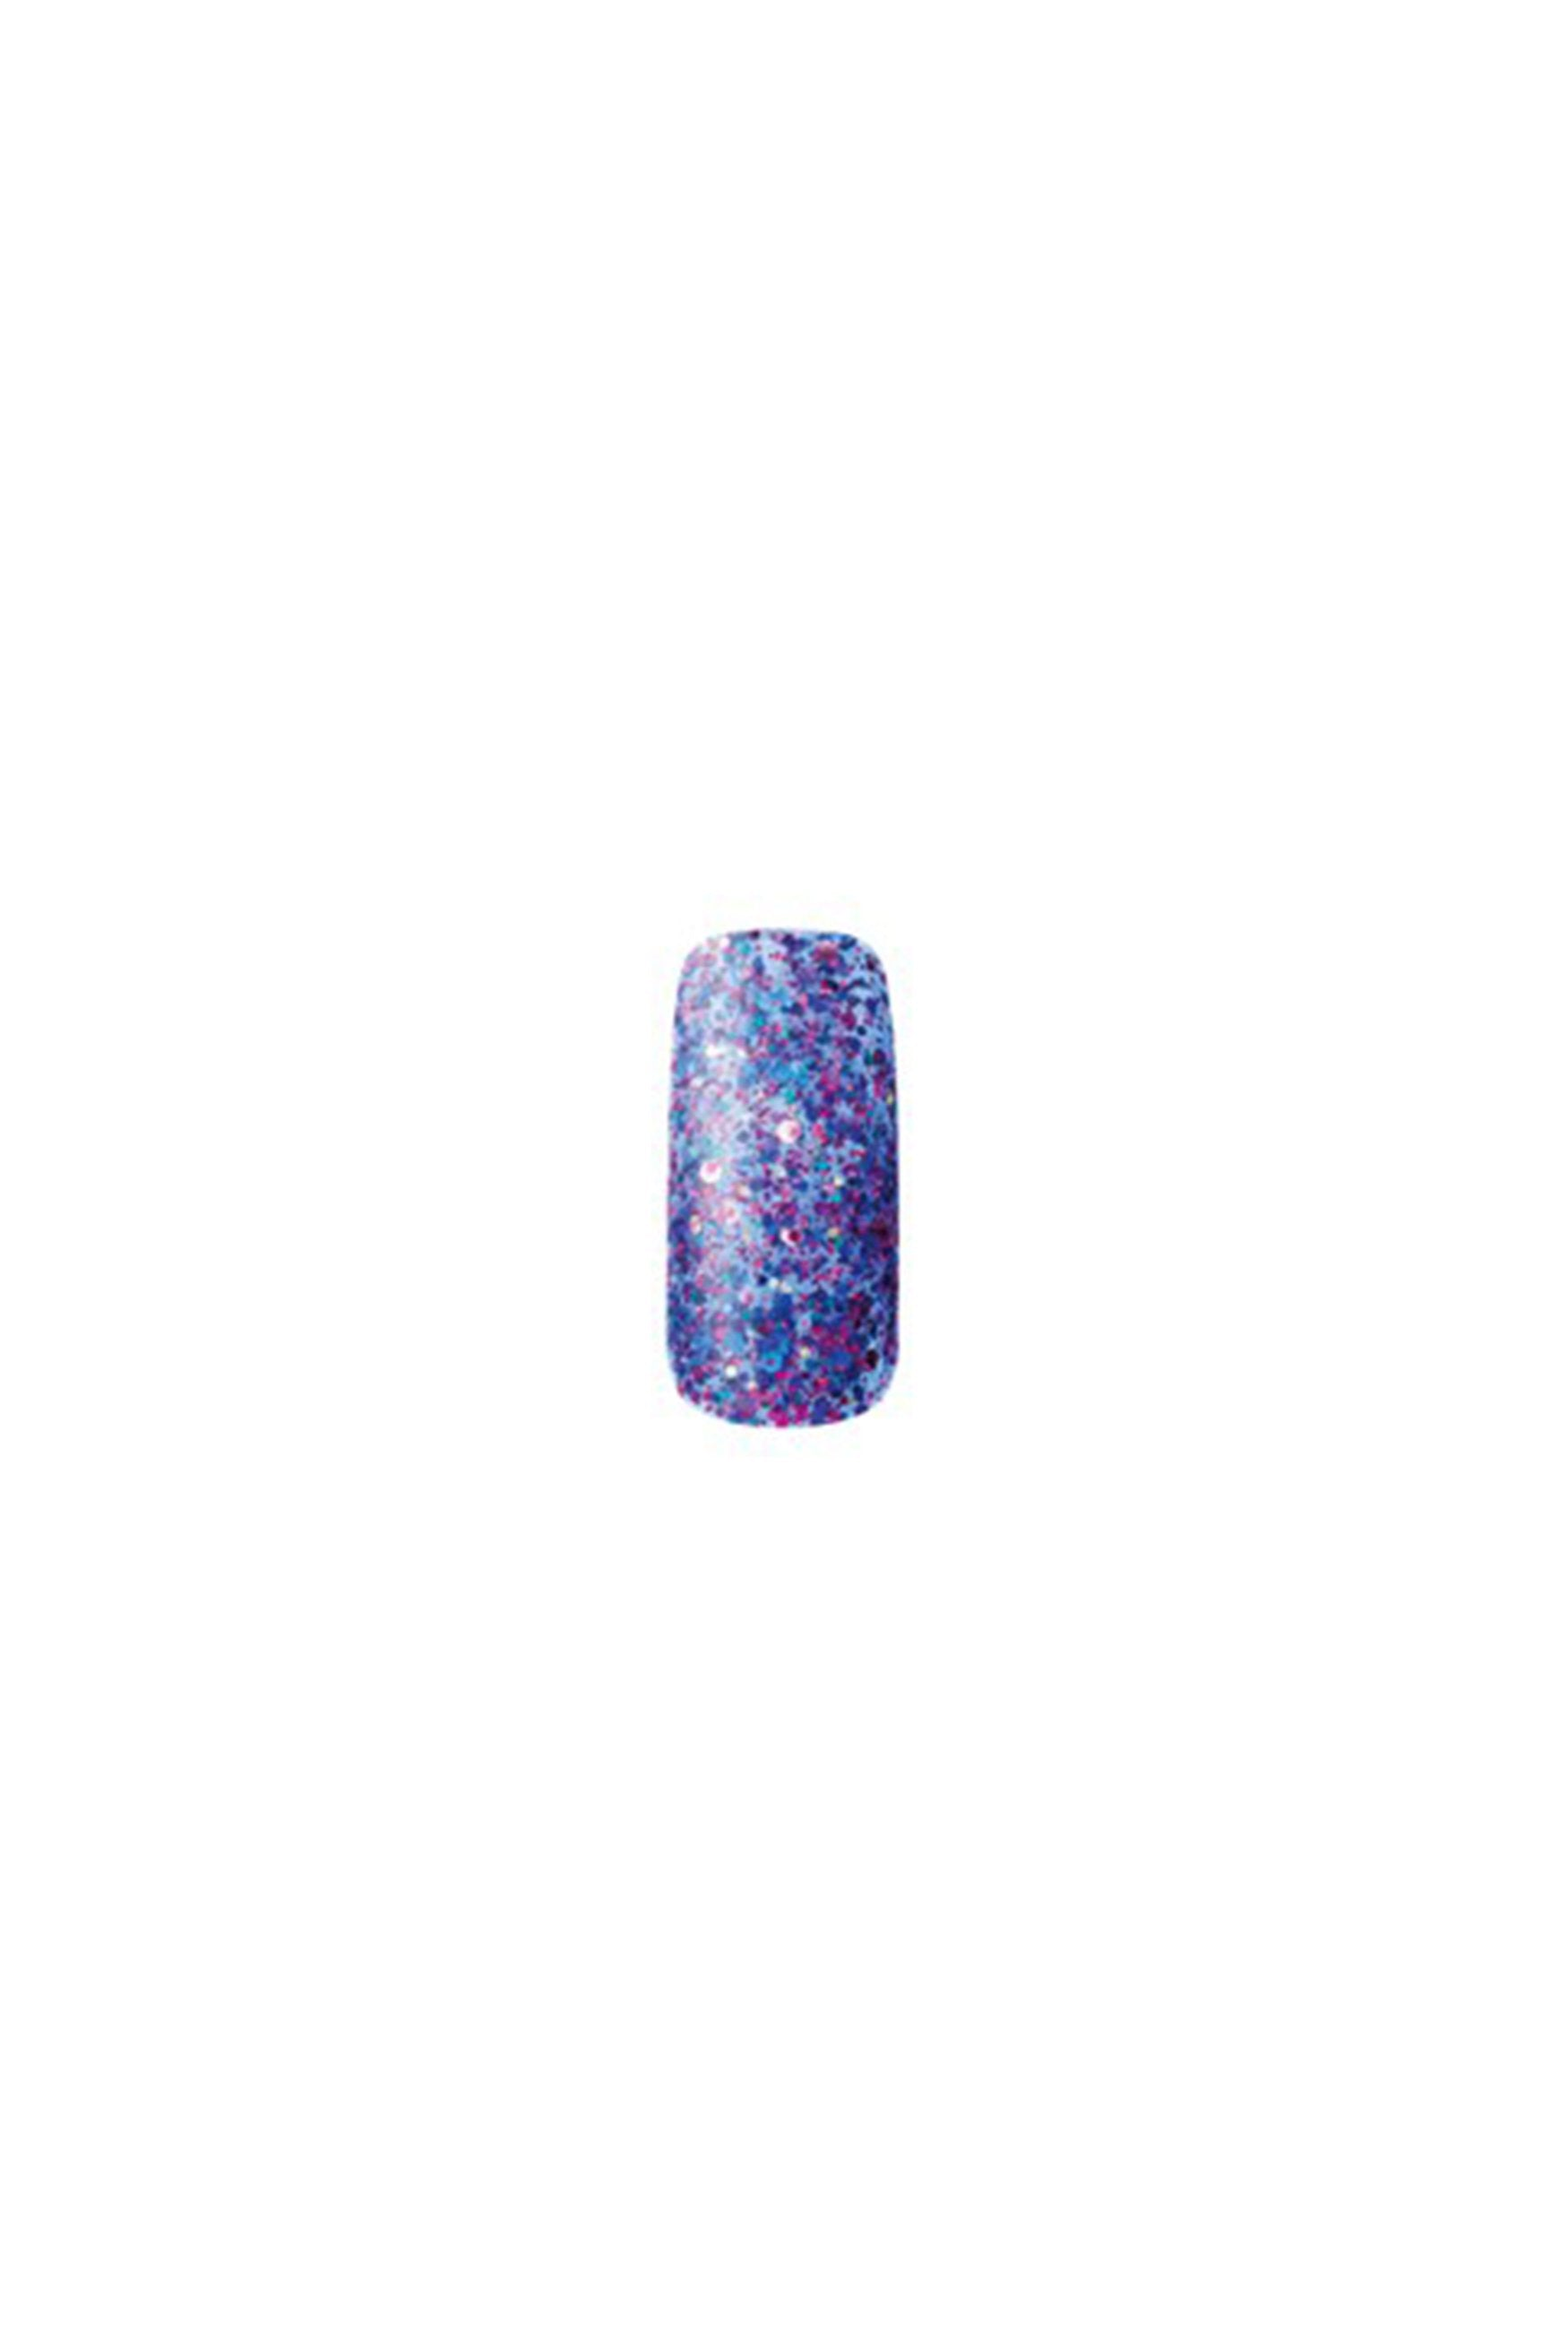 https://anna-sui.myshopify.com/products/nail-color-k